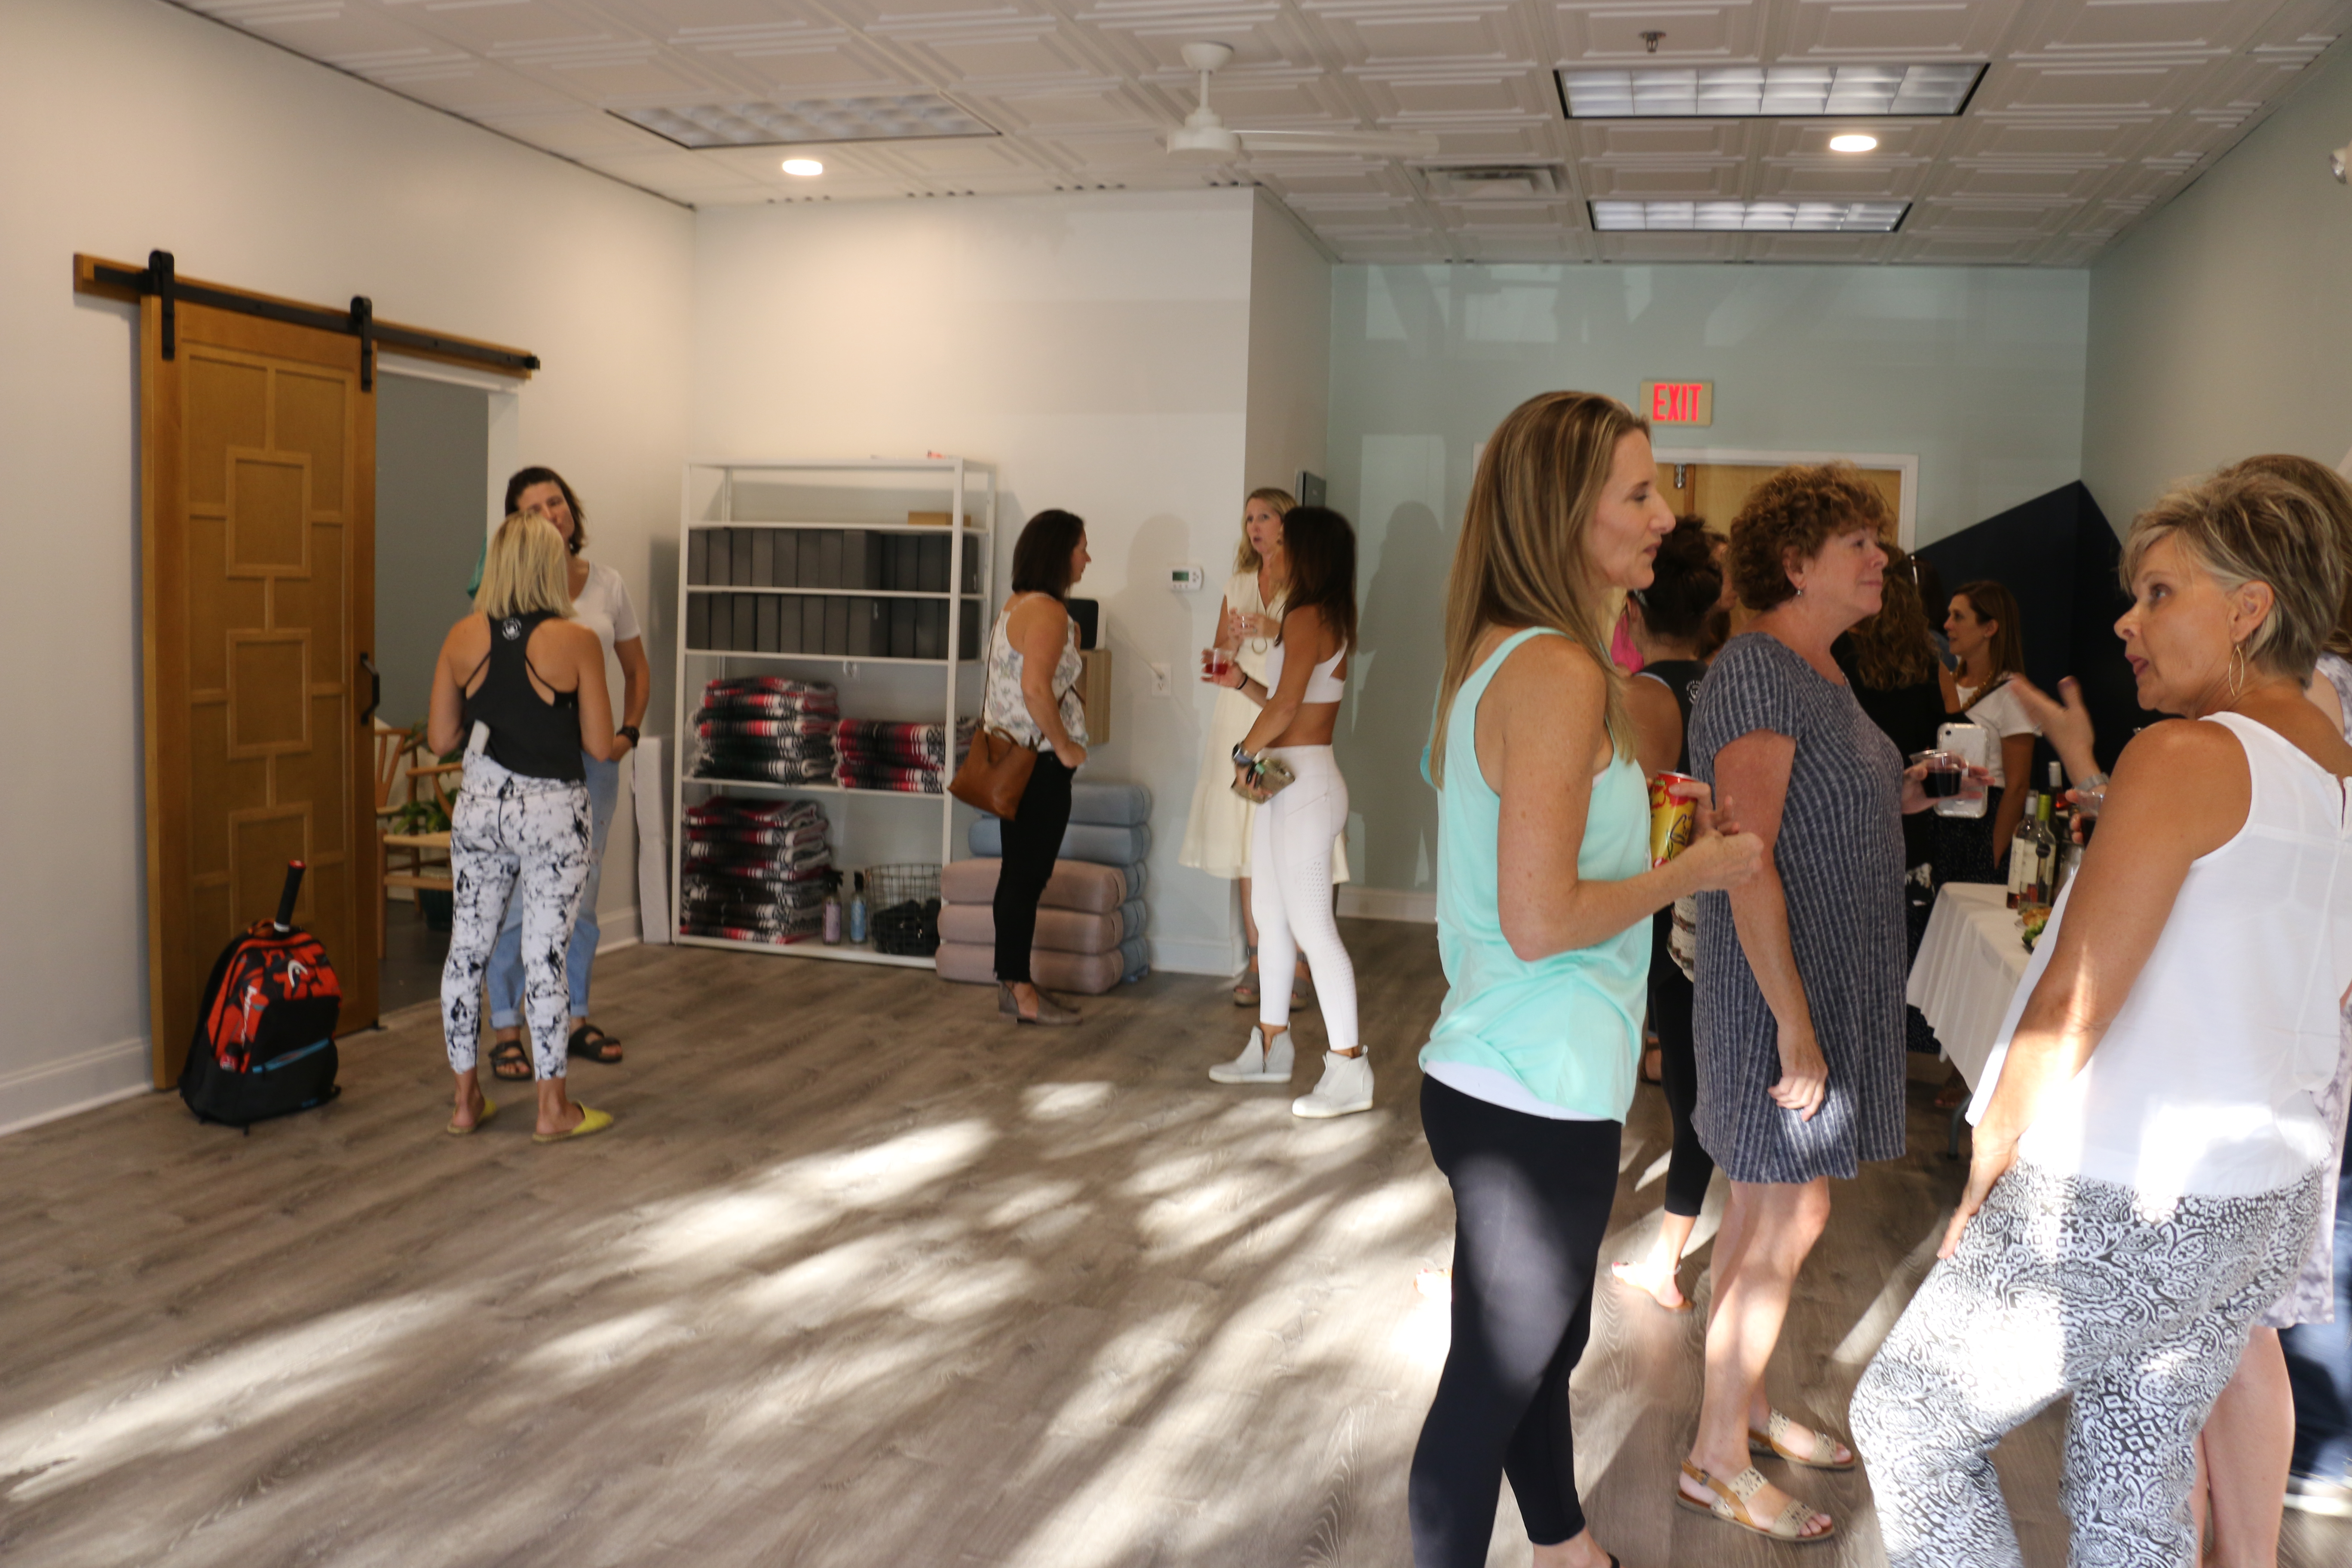 Friends and family got a peek at the interior of the new Revive Yoga Studio at a preview last week.